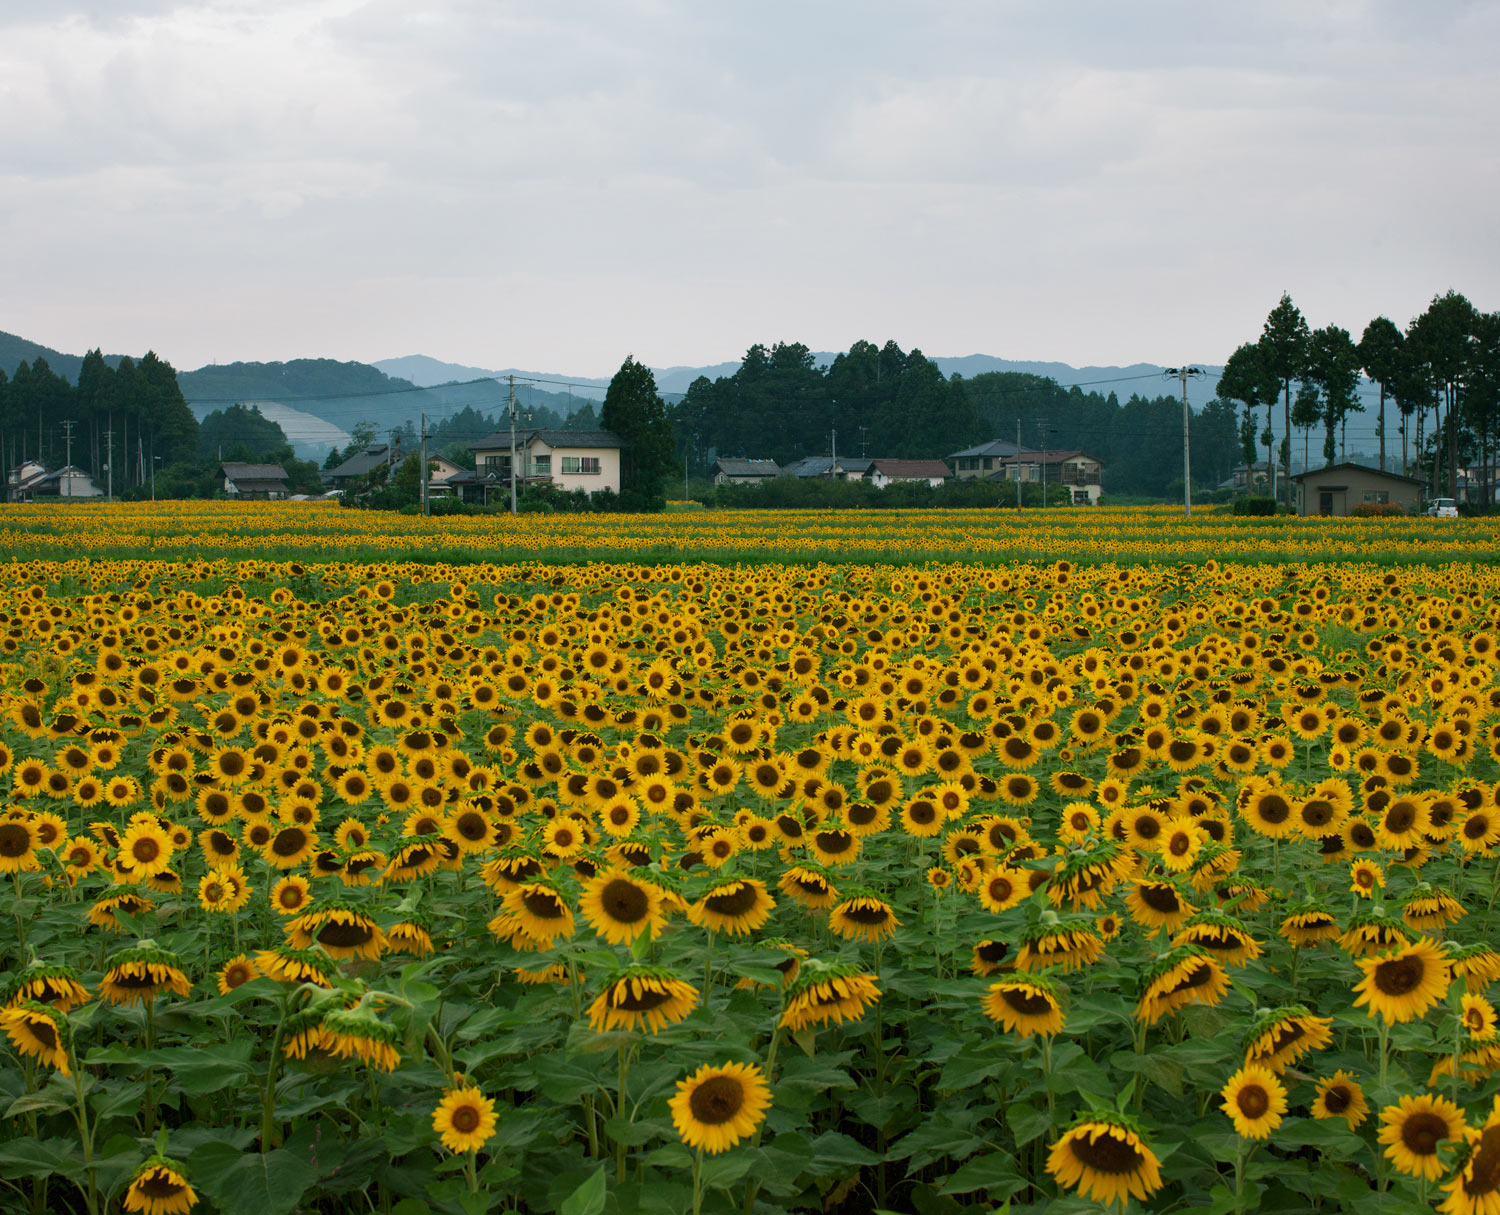 Sunflowers were planted where there used to be a rice field as an offering for the dead